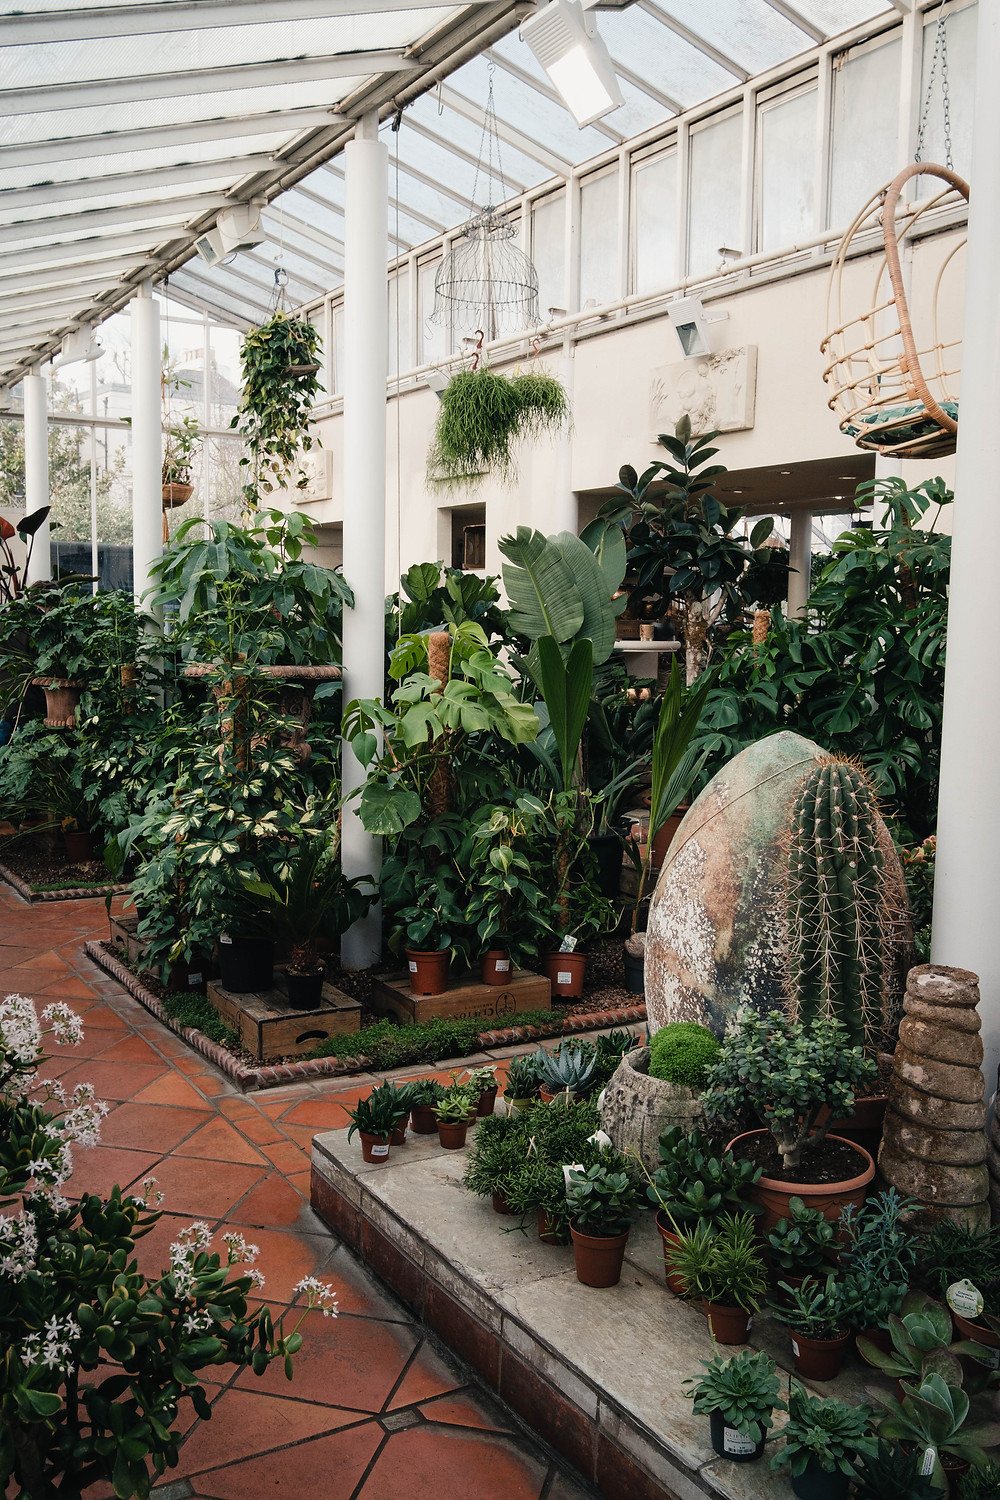 Photograph of the green house at Clifton Nursery